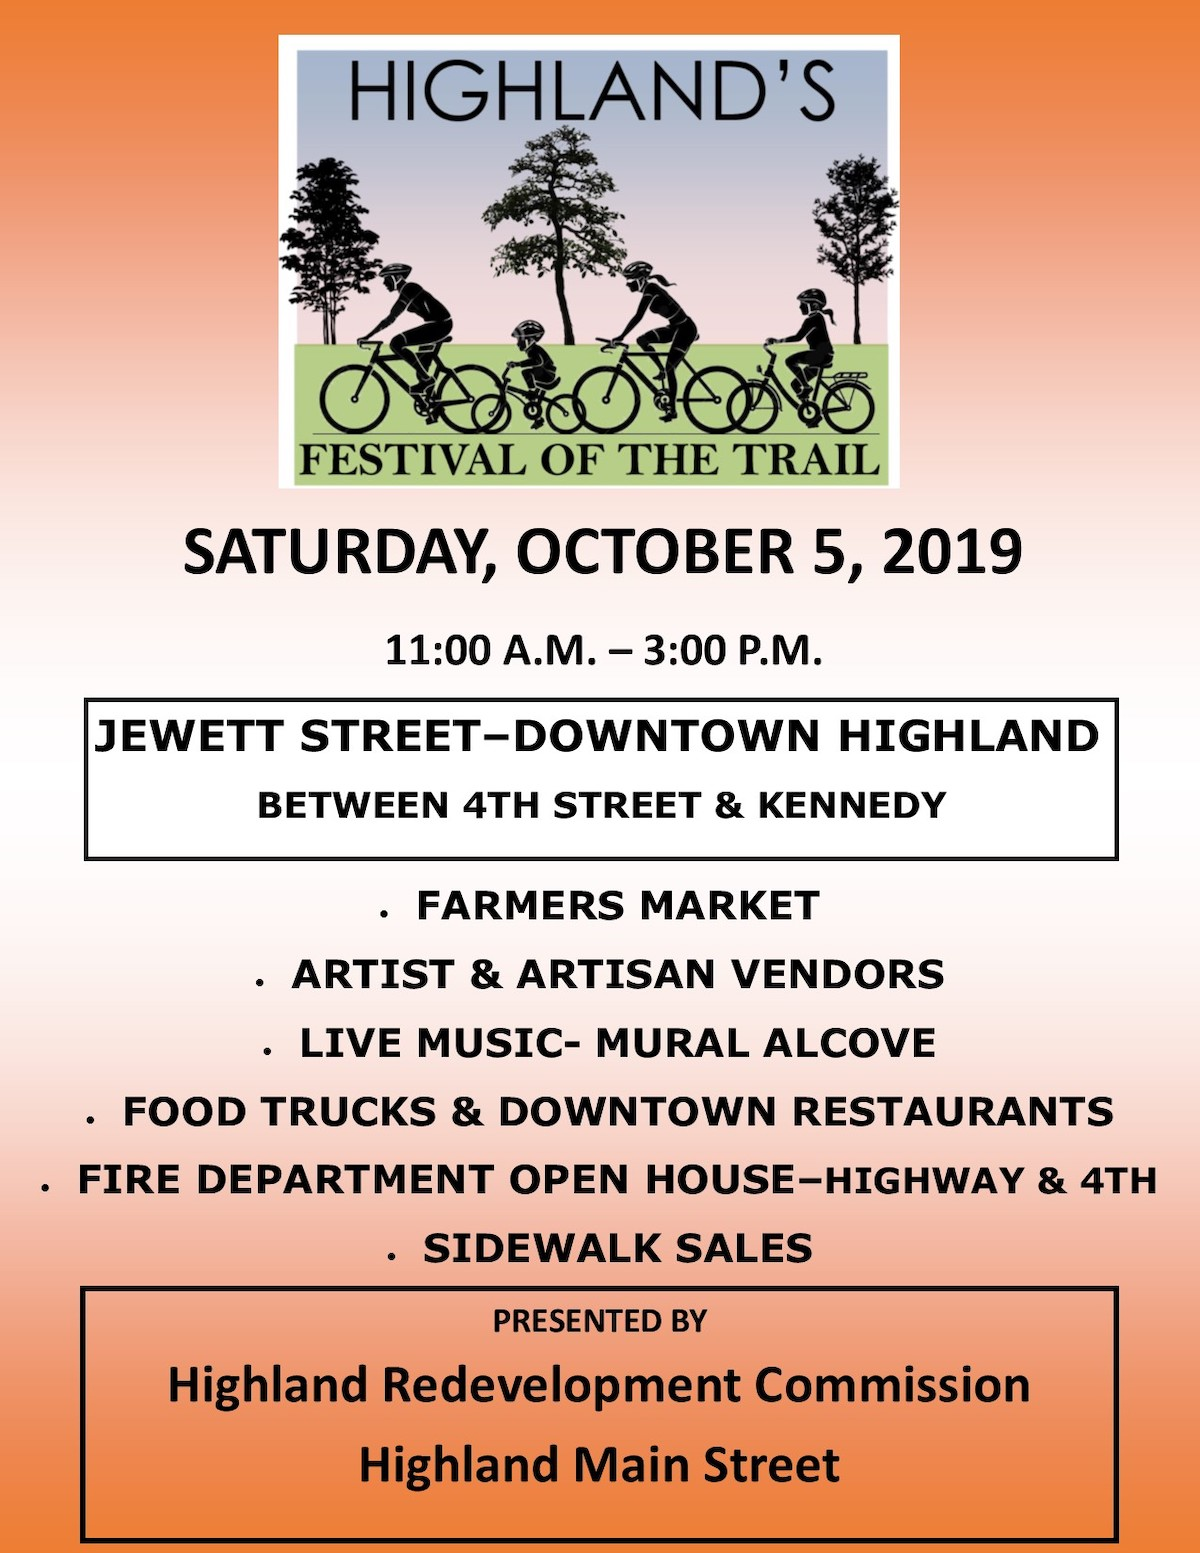 Highland Festival of the Trail